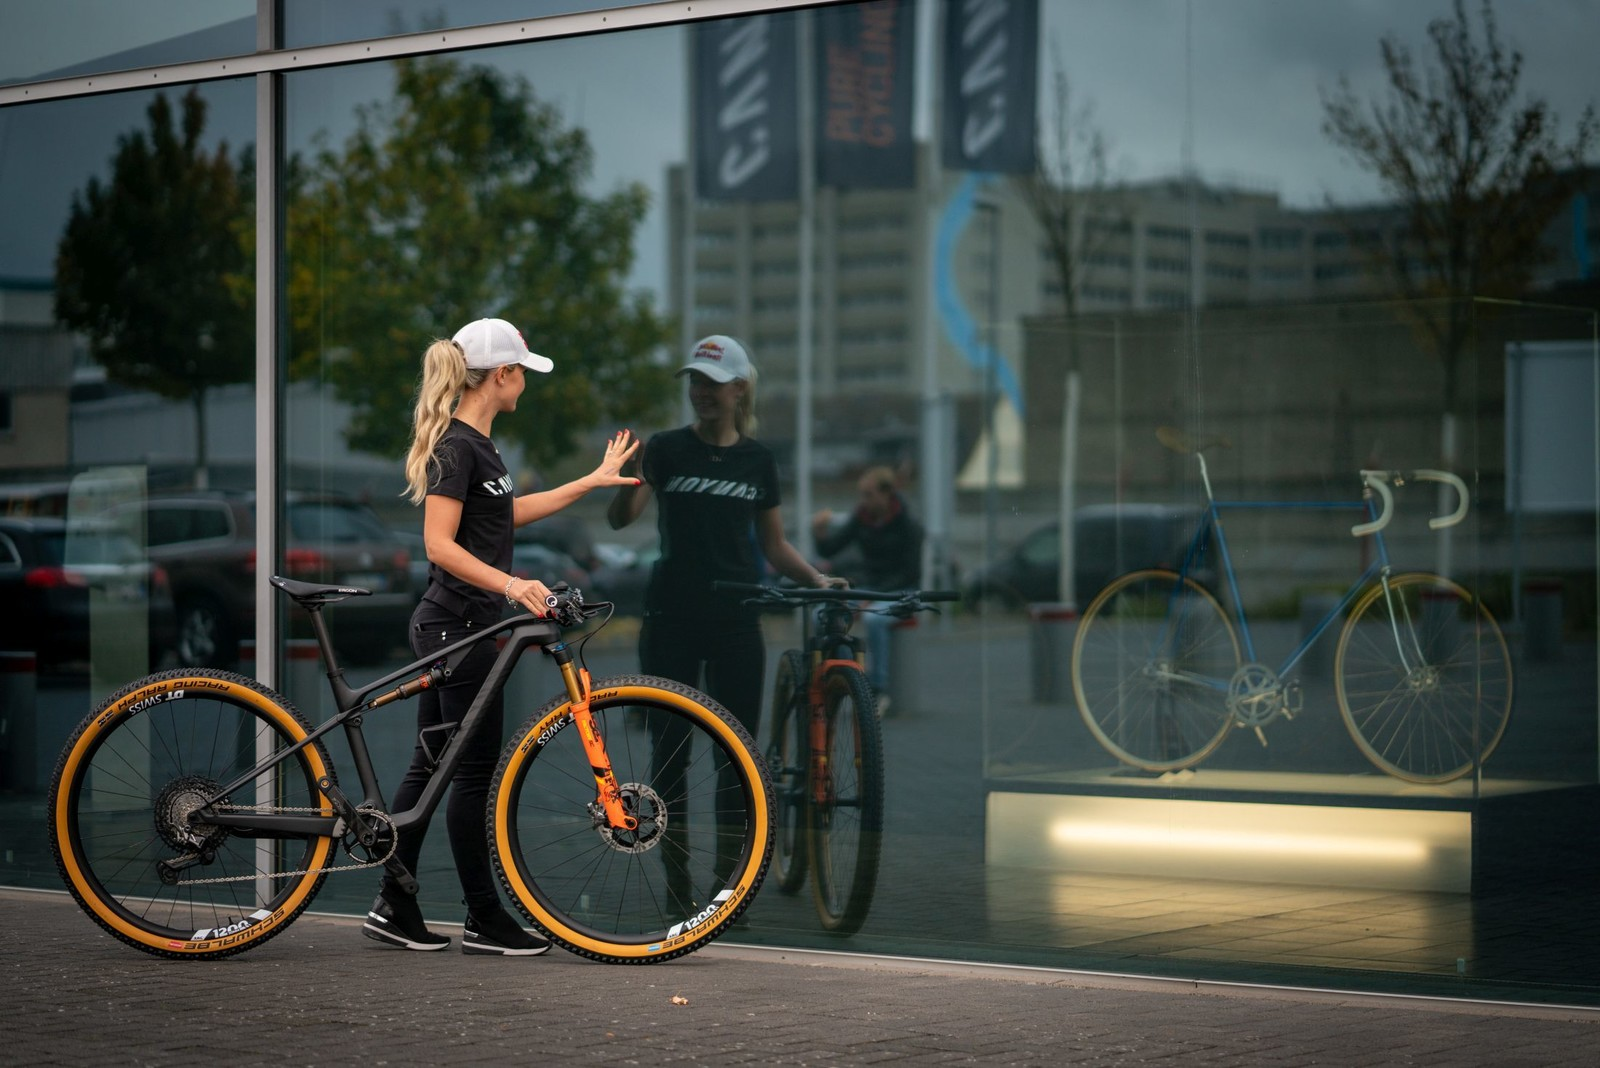 XCO star Emily Batty and the track bike of Canyon founder Roman Arnold. Pictured at the Canyon HQ Showroom, Koblenz, Germany.